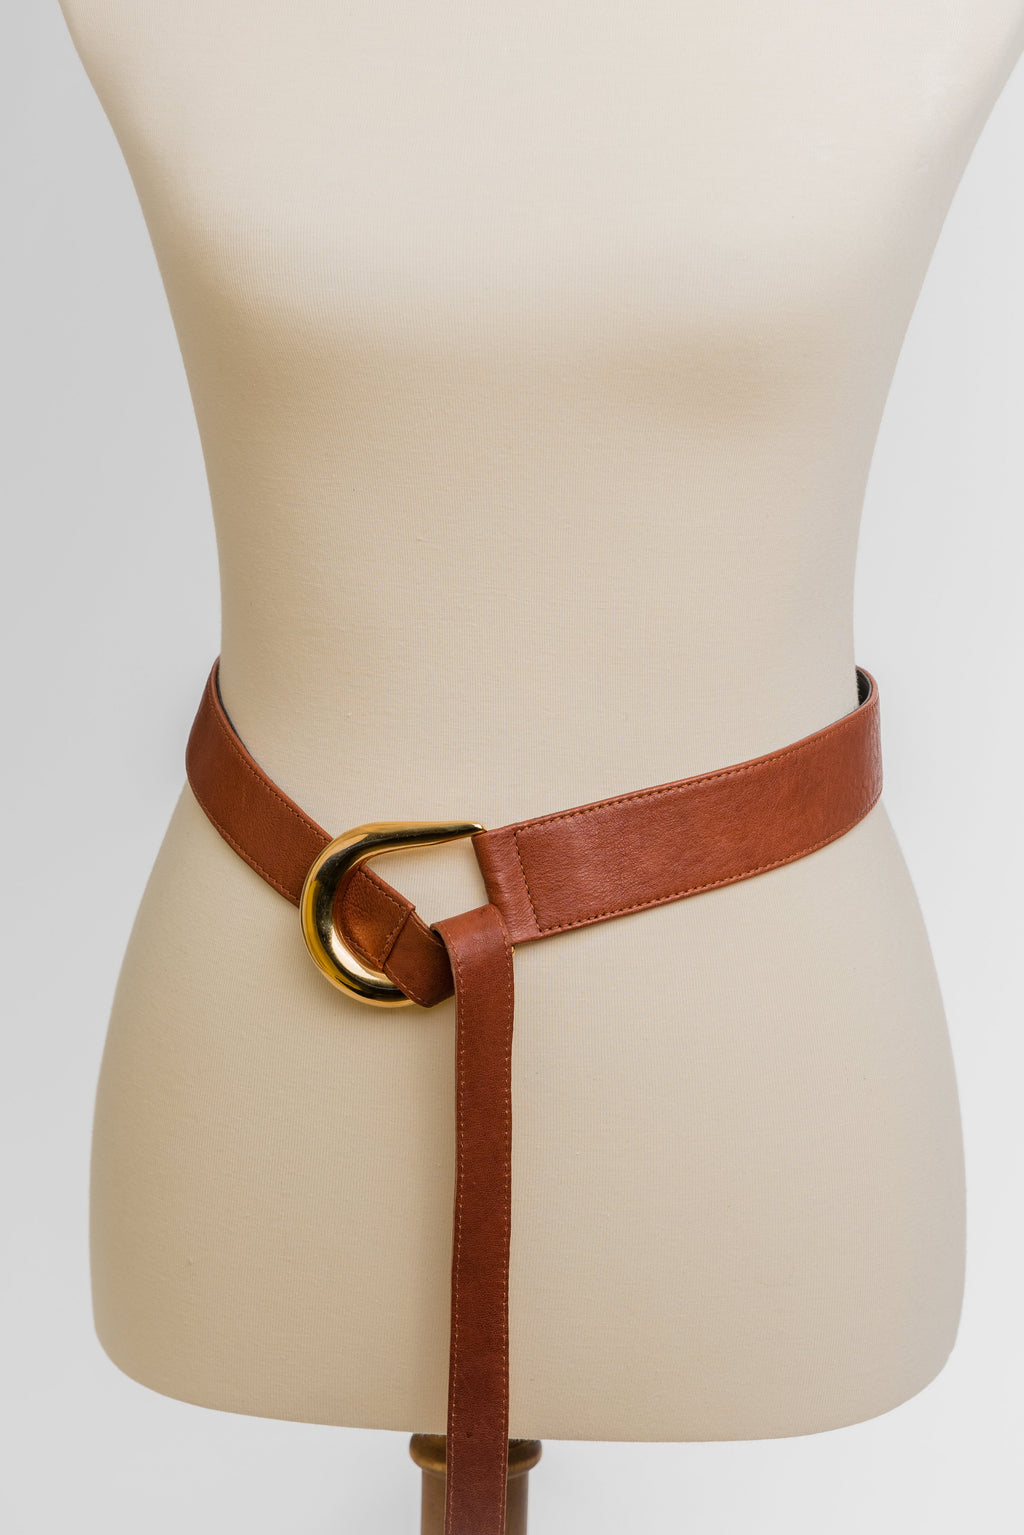 Raina Belts Shelia Belt - That Sunny Spot